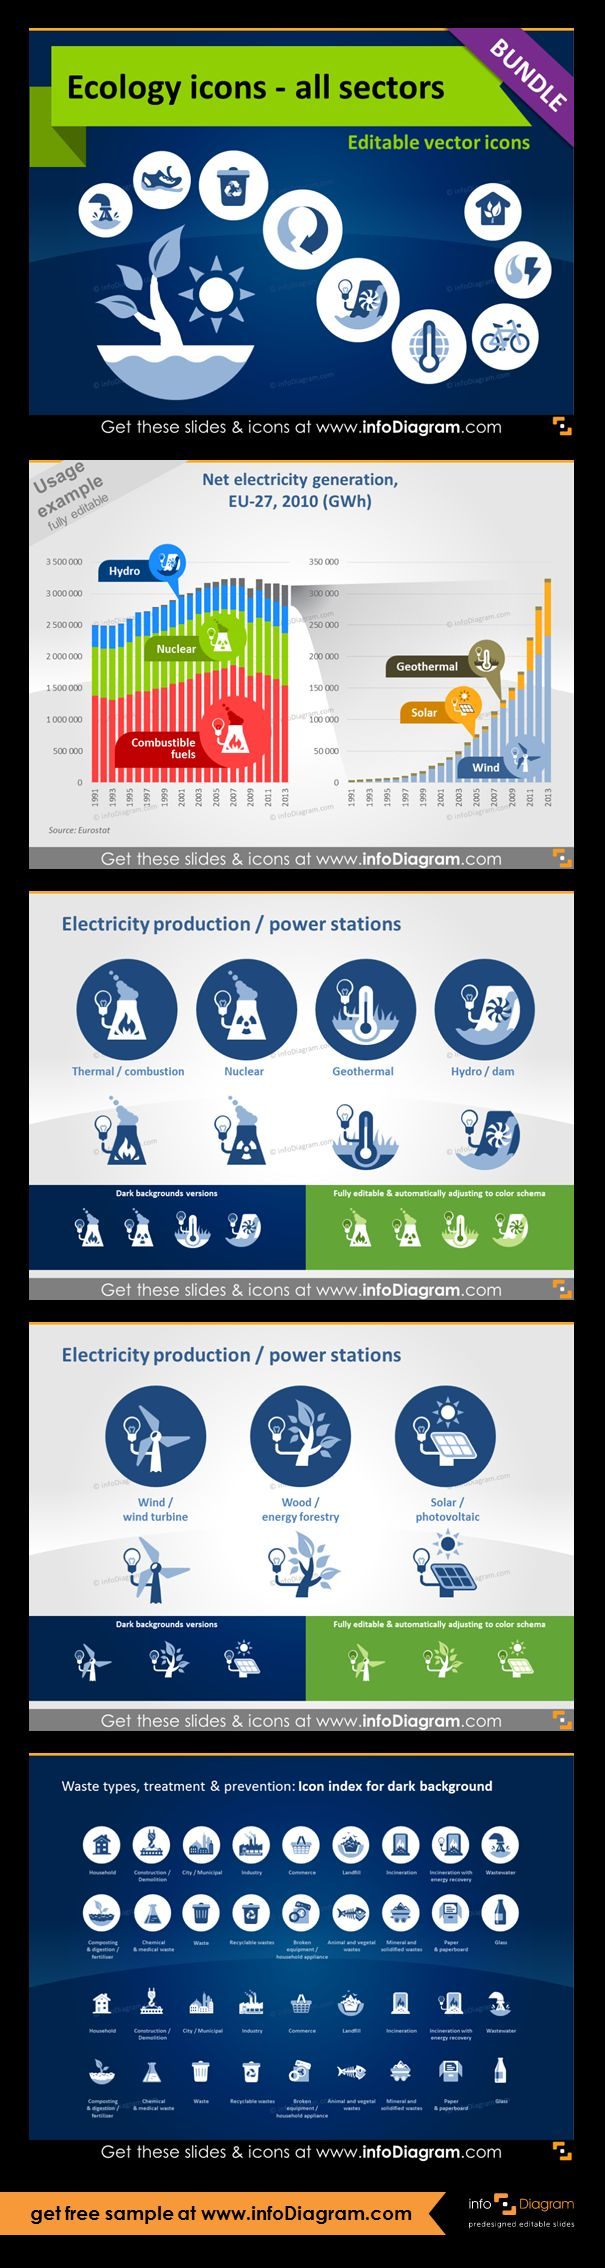 Ecology icons and visuals for ecology related presentations. Net electricity generation (bar chart with icons diagram). Production industries icons (electricity production and power station): Thermal /combustion, Nuclear, Geothermal, Hydro / dam, Wind / wind turbine, Wood / energy forestry, Solar / photovoltaic. All symbols are as clipart pictures - fully editable in PowerPoint.